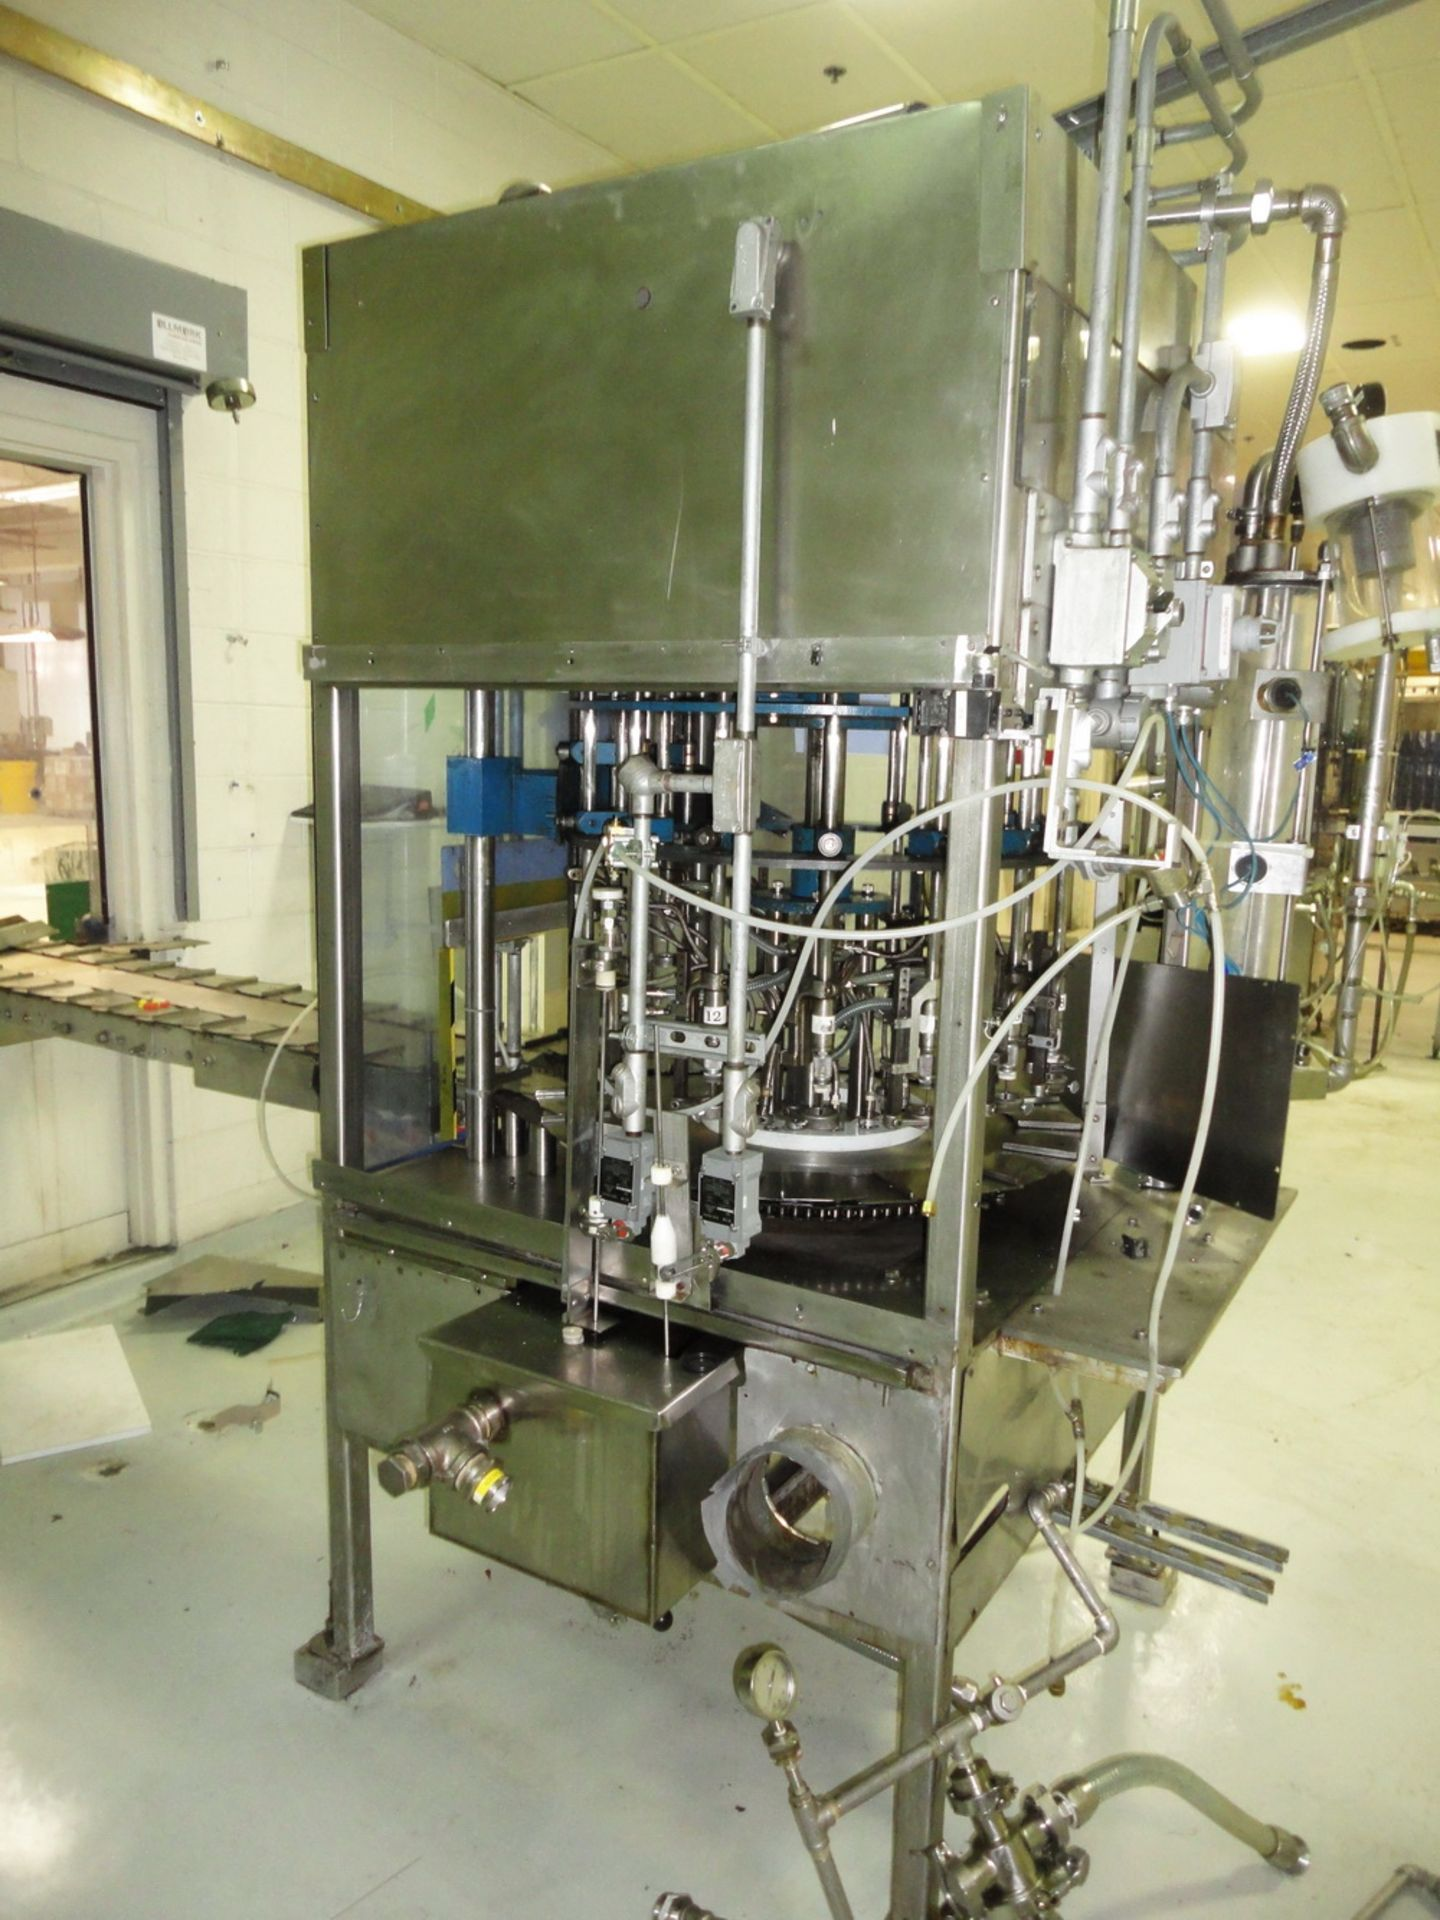 Lot 199 - RJM 16 Head Vacuum Filler, Model PF 1, S/N 80447, explosion proof, vacuum jar, stainless steel